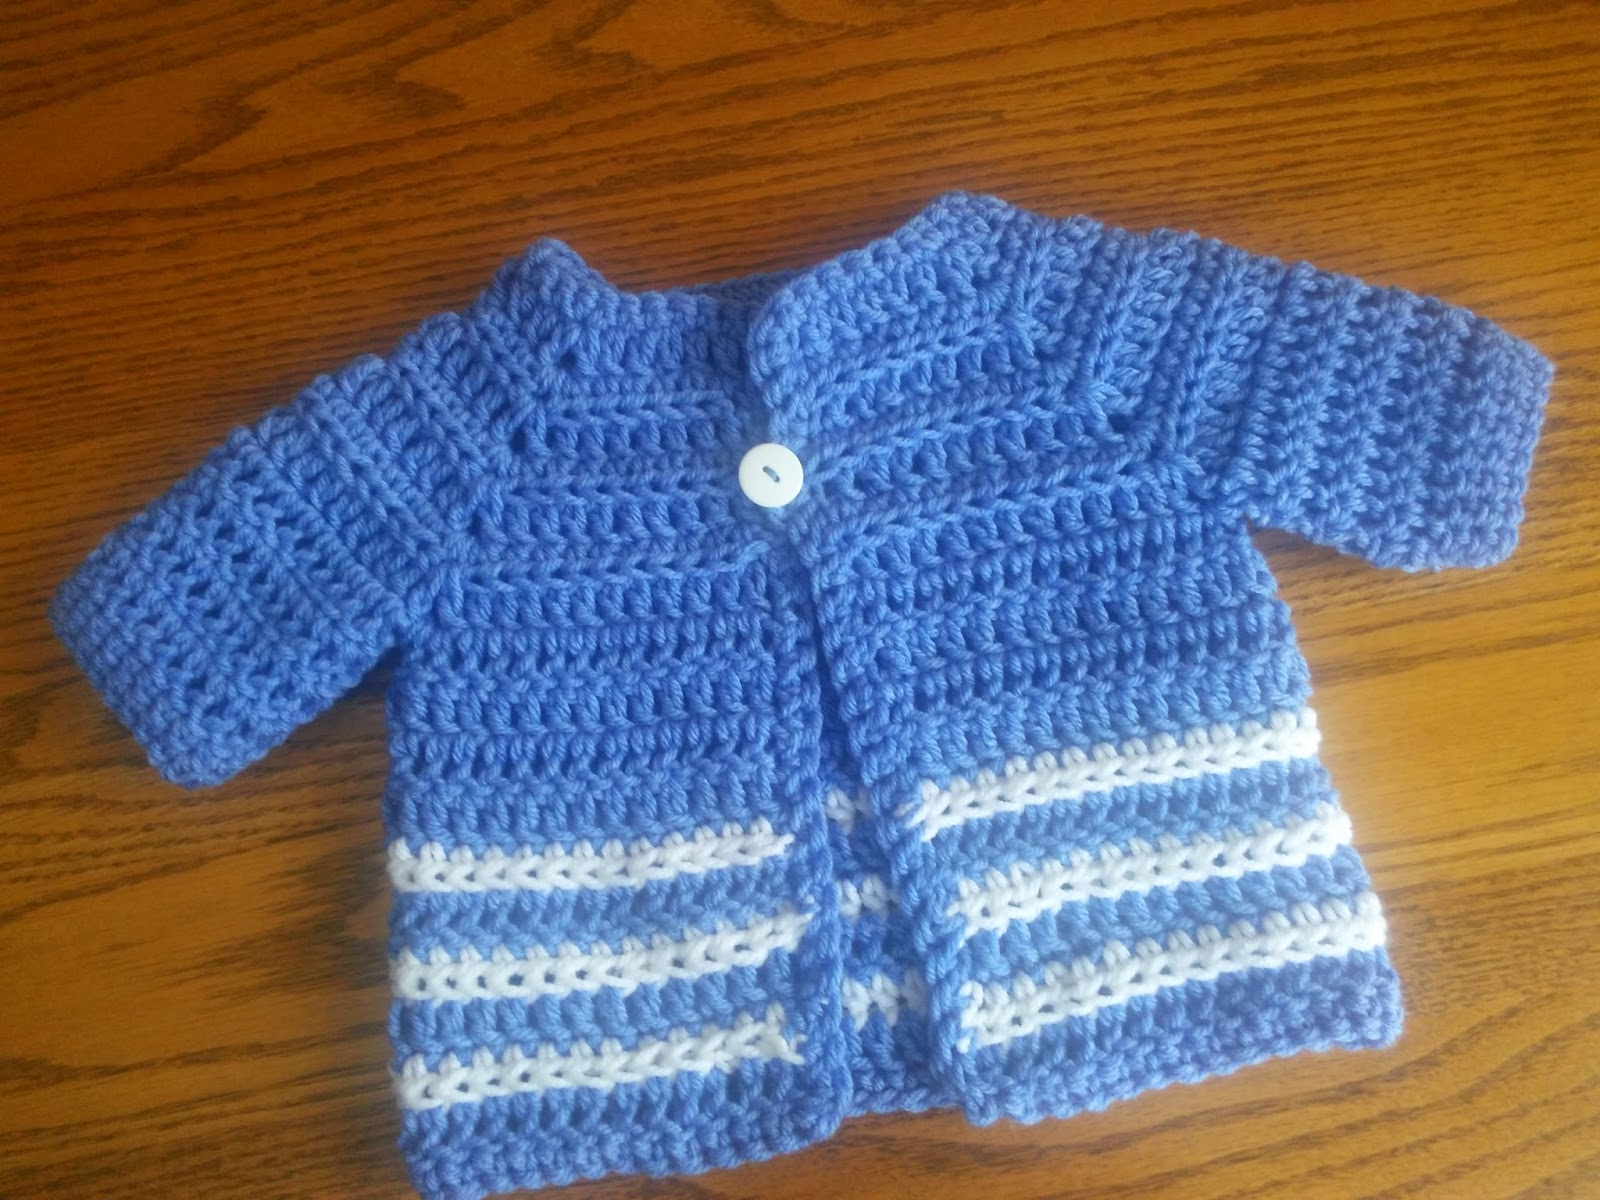 Crochet Baby Boy Sweater Free Patterns : Craft Brag: Baby Boy Crochet Sweater - Pattern